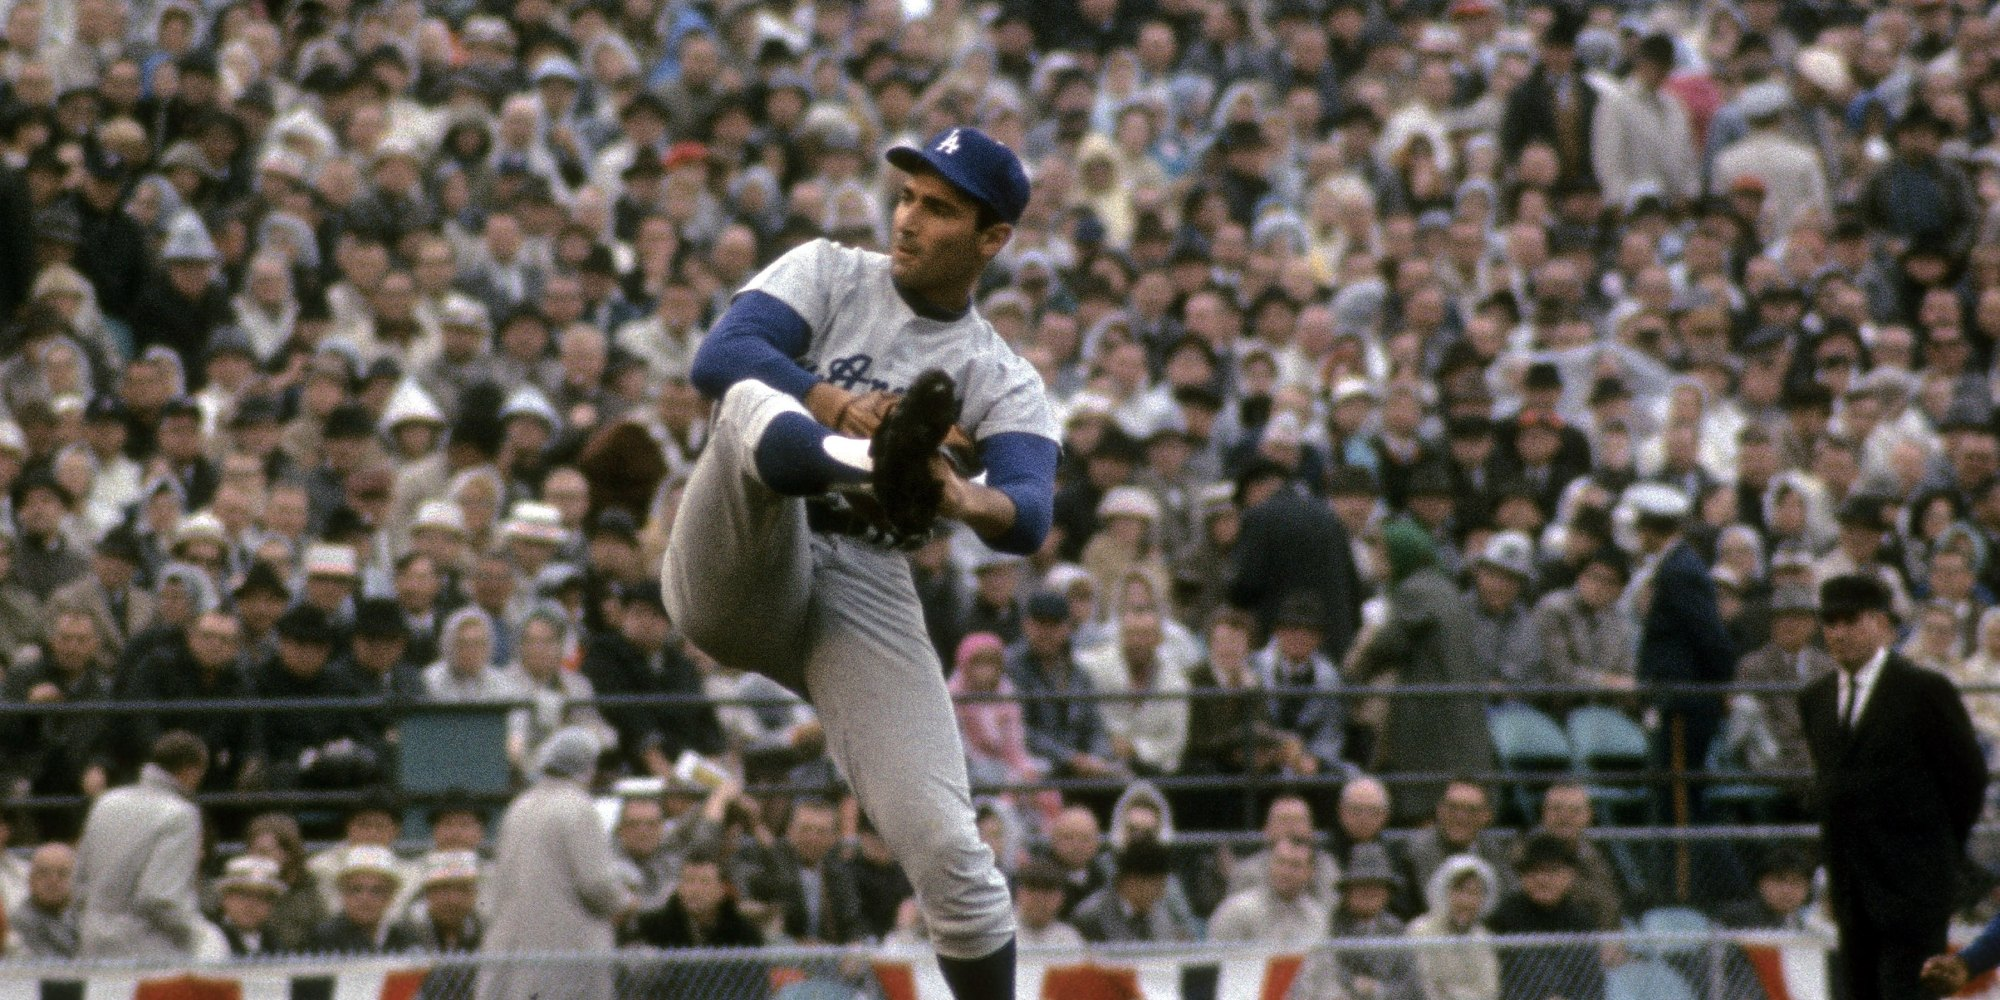 Sandy Koufax baseball stats with batting stats pitching stats and fielding stats along with uniform numbers salaries quotes career stats and biographical data